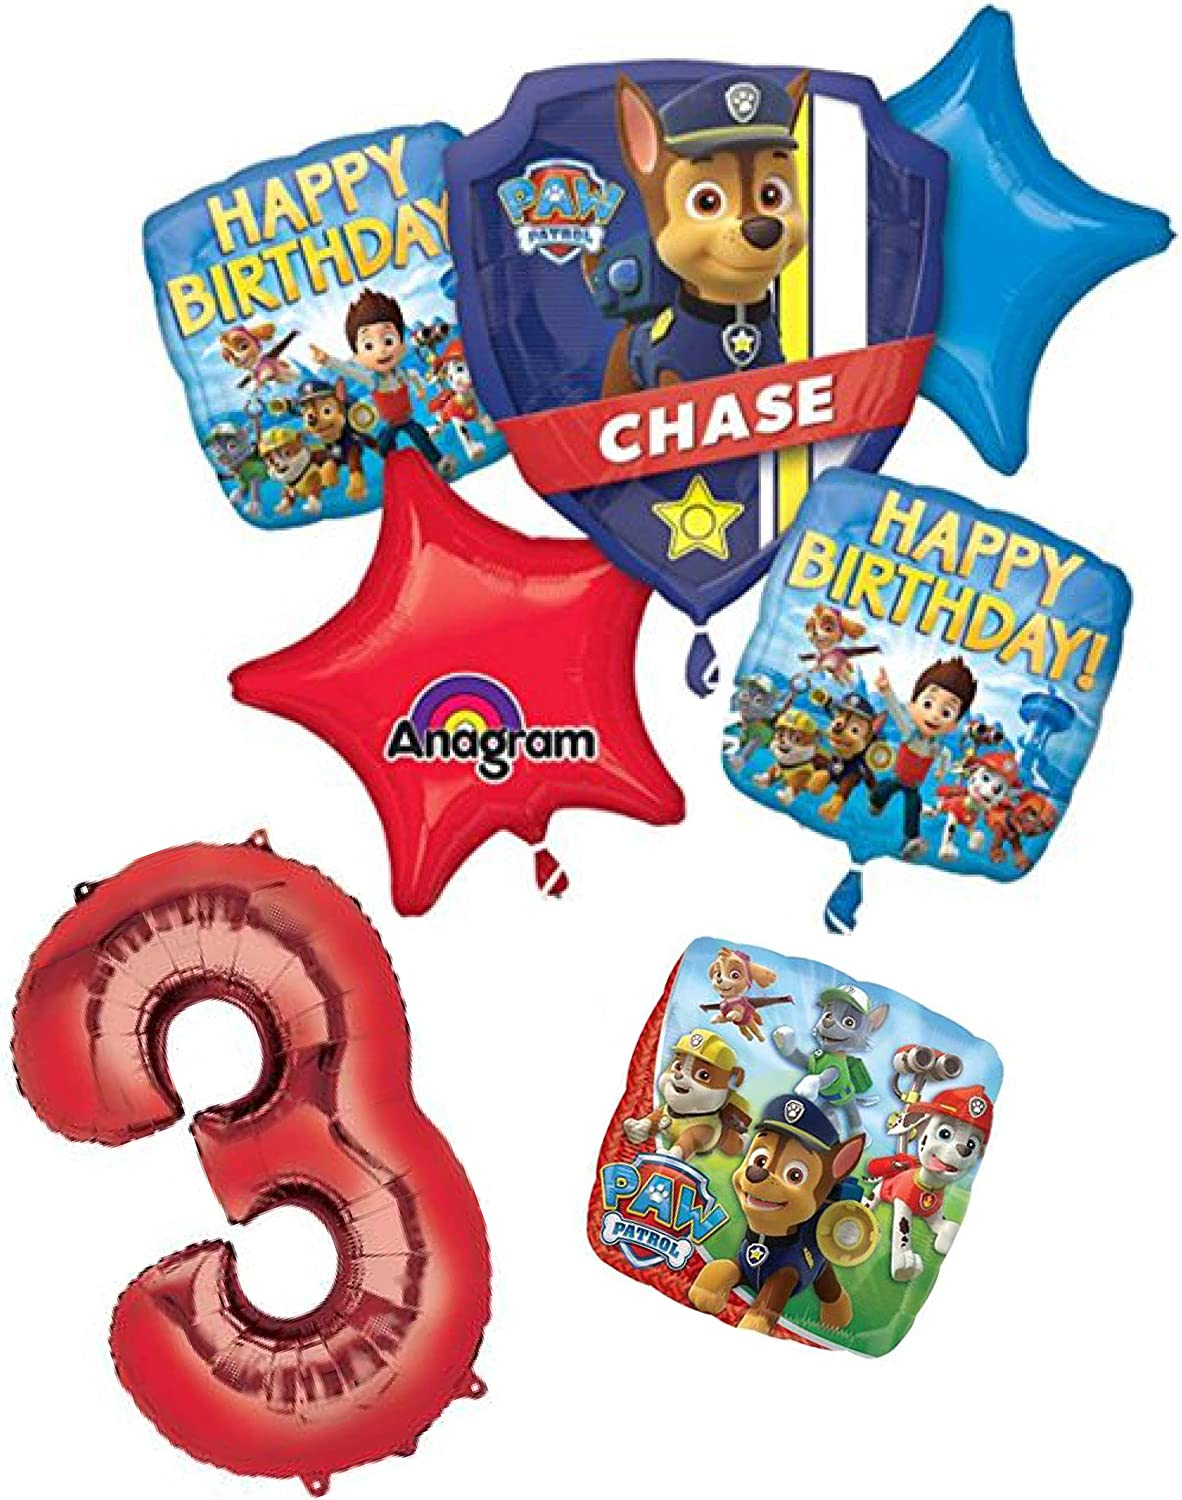 Paw Patrol 3 Year Old Birthday Party Balloon Decoration Bundle Includes 7 Foil Balloons